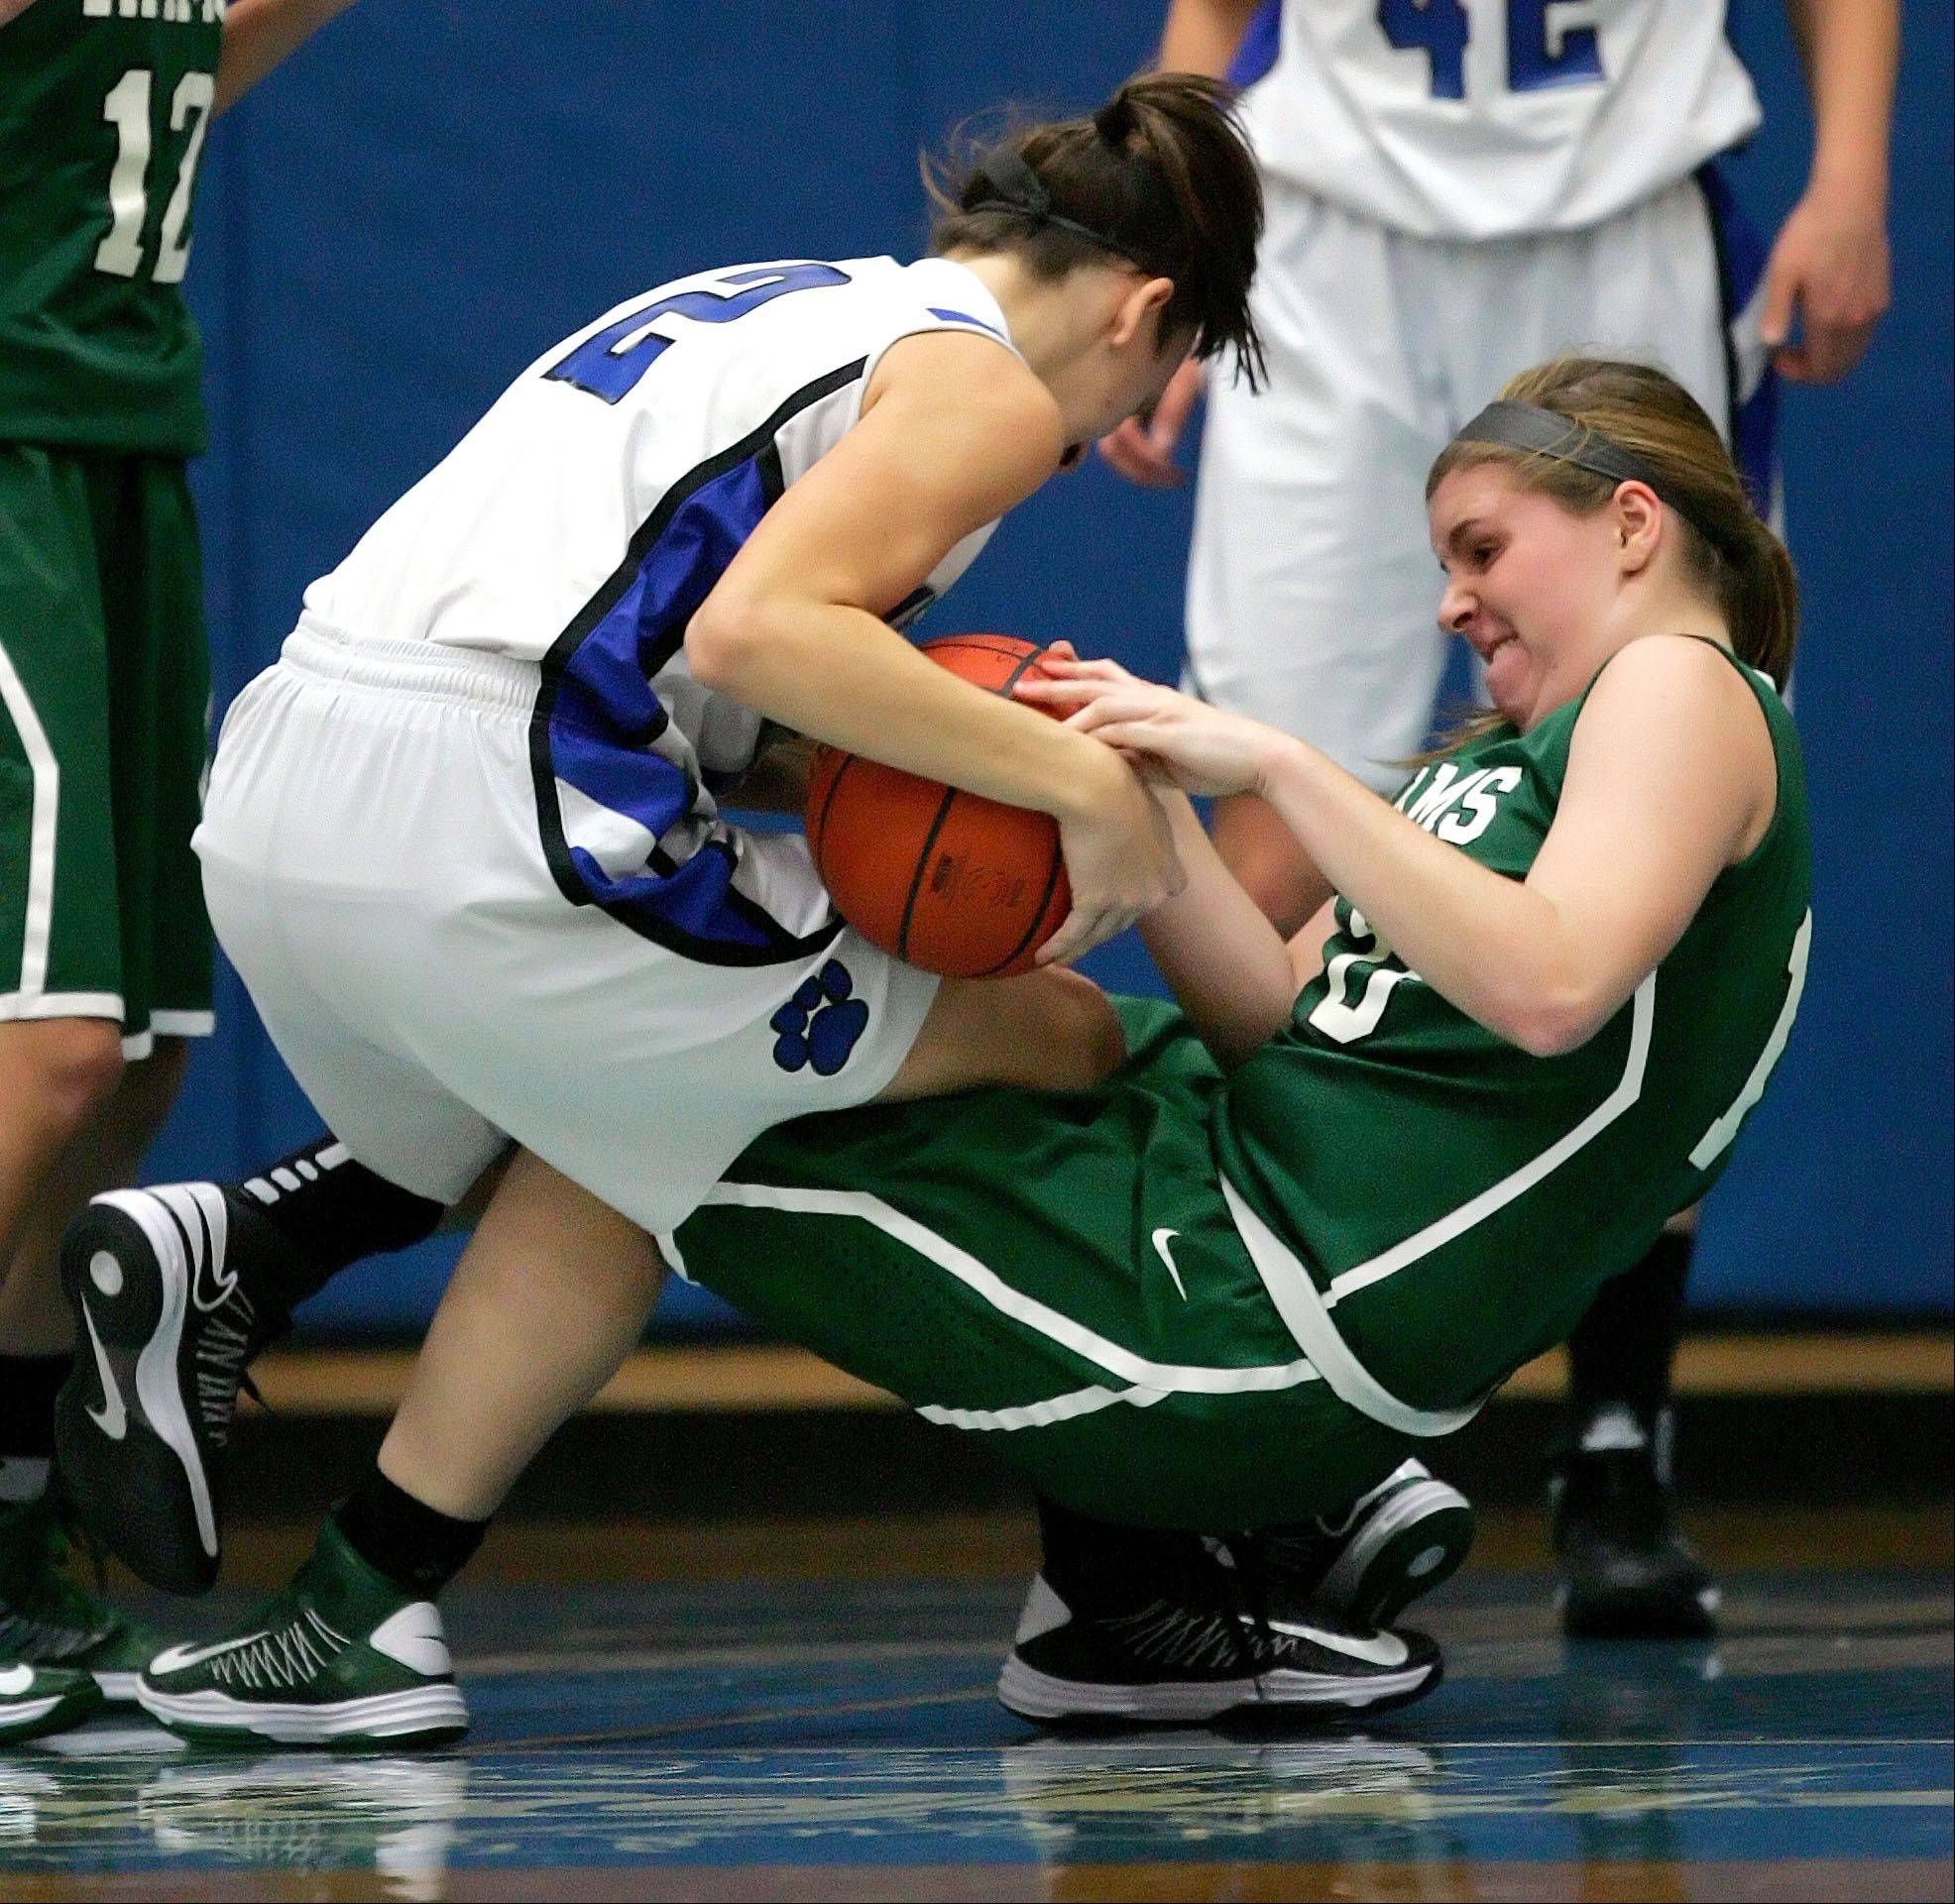 Vernon Hills' Alina Lehocky , left, and Grayslake Central's Maddy Miller fight for the ball Tuesday night in Vernon Hills.